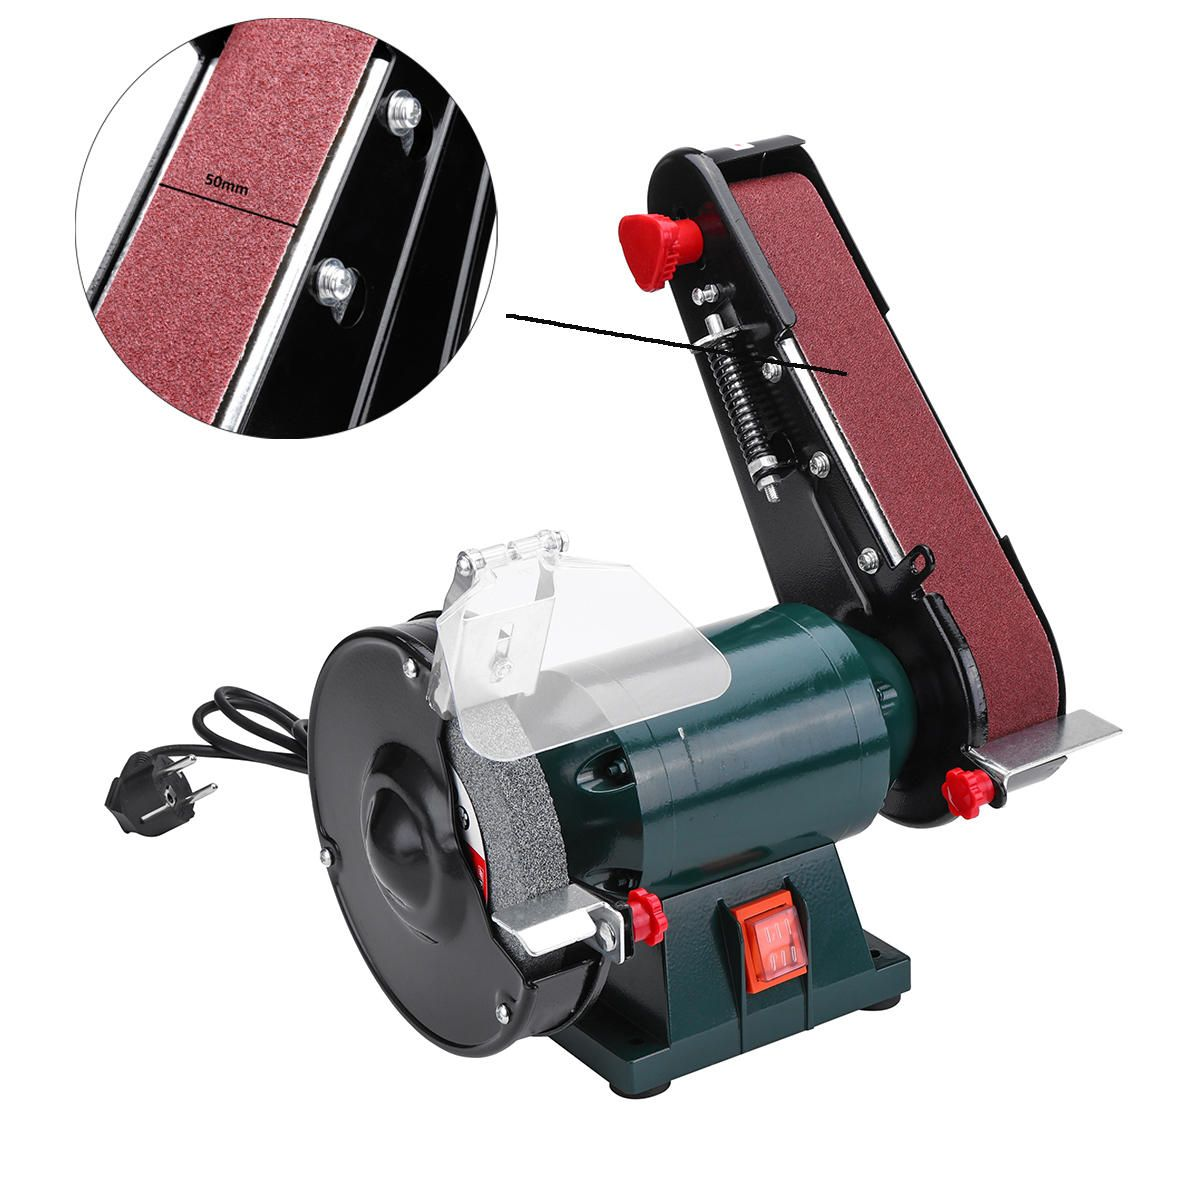 6 Inch 150mm Bench Grinder Belt Sander Sharpener Linisher Electric Sanding Grinding Machine In 2020 Grinding Machine Belt Sander Bench Grinder